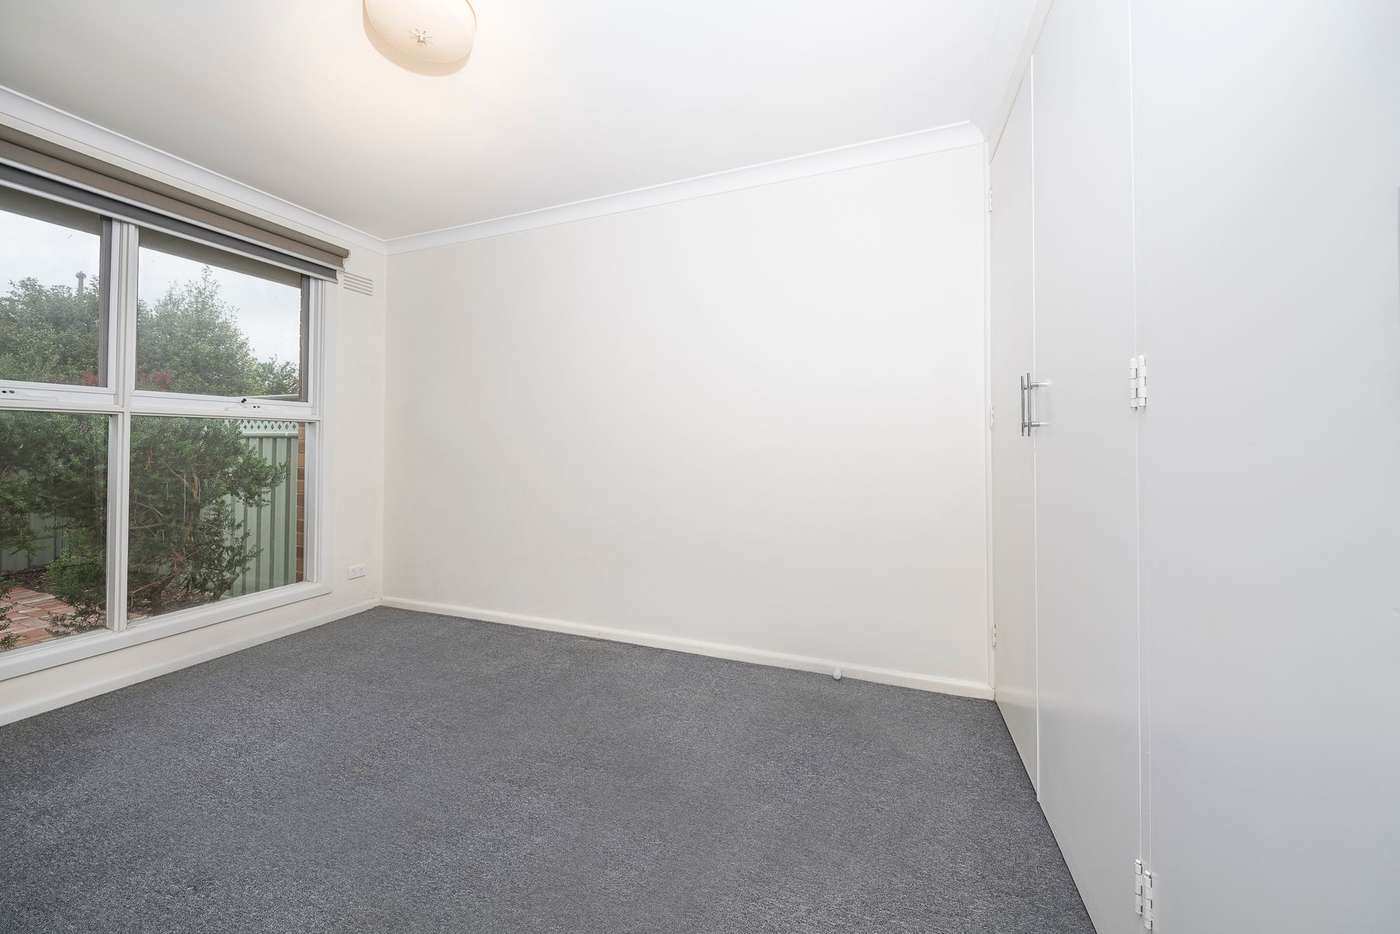 Sixth view of Homely villa listing, 3/6 Lincoln Road, Essendon VIC 3040